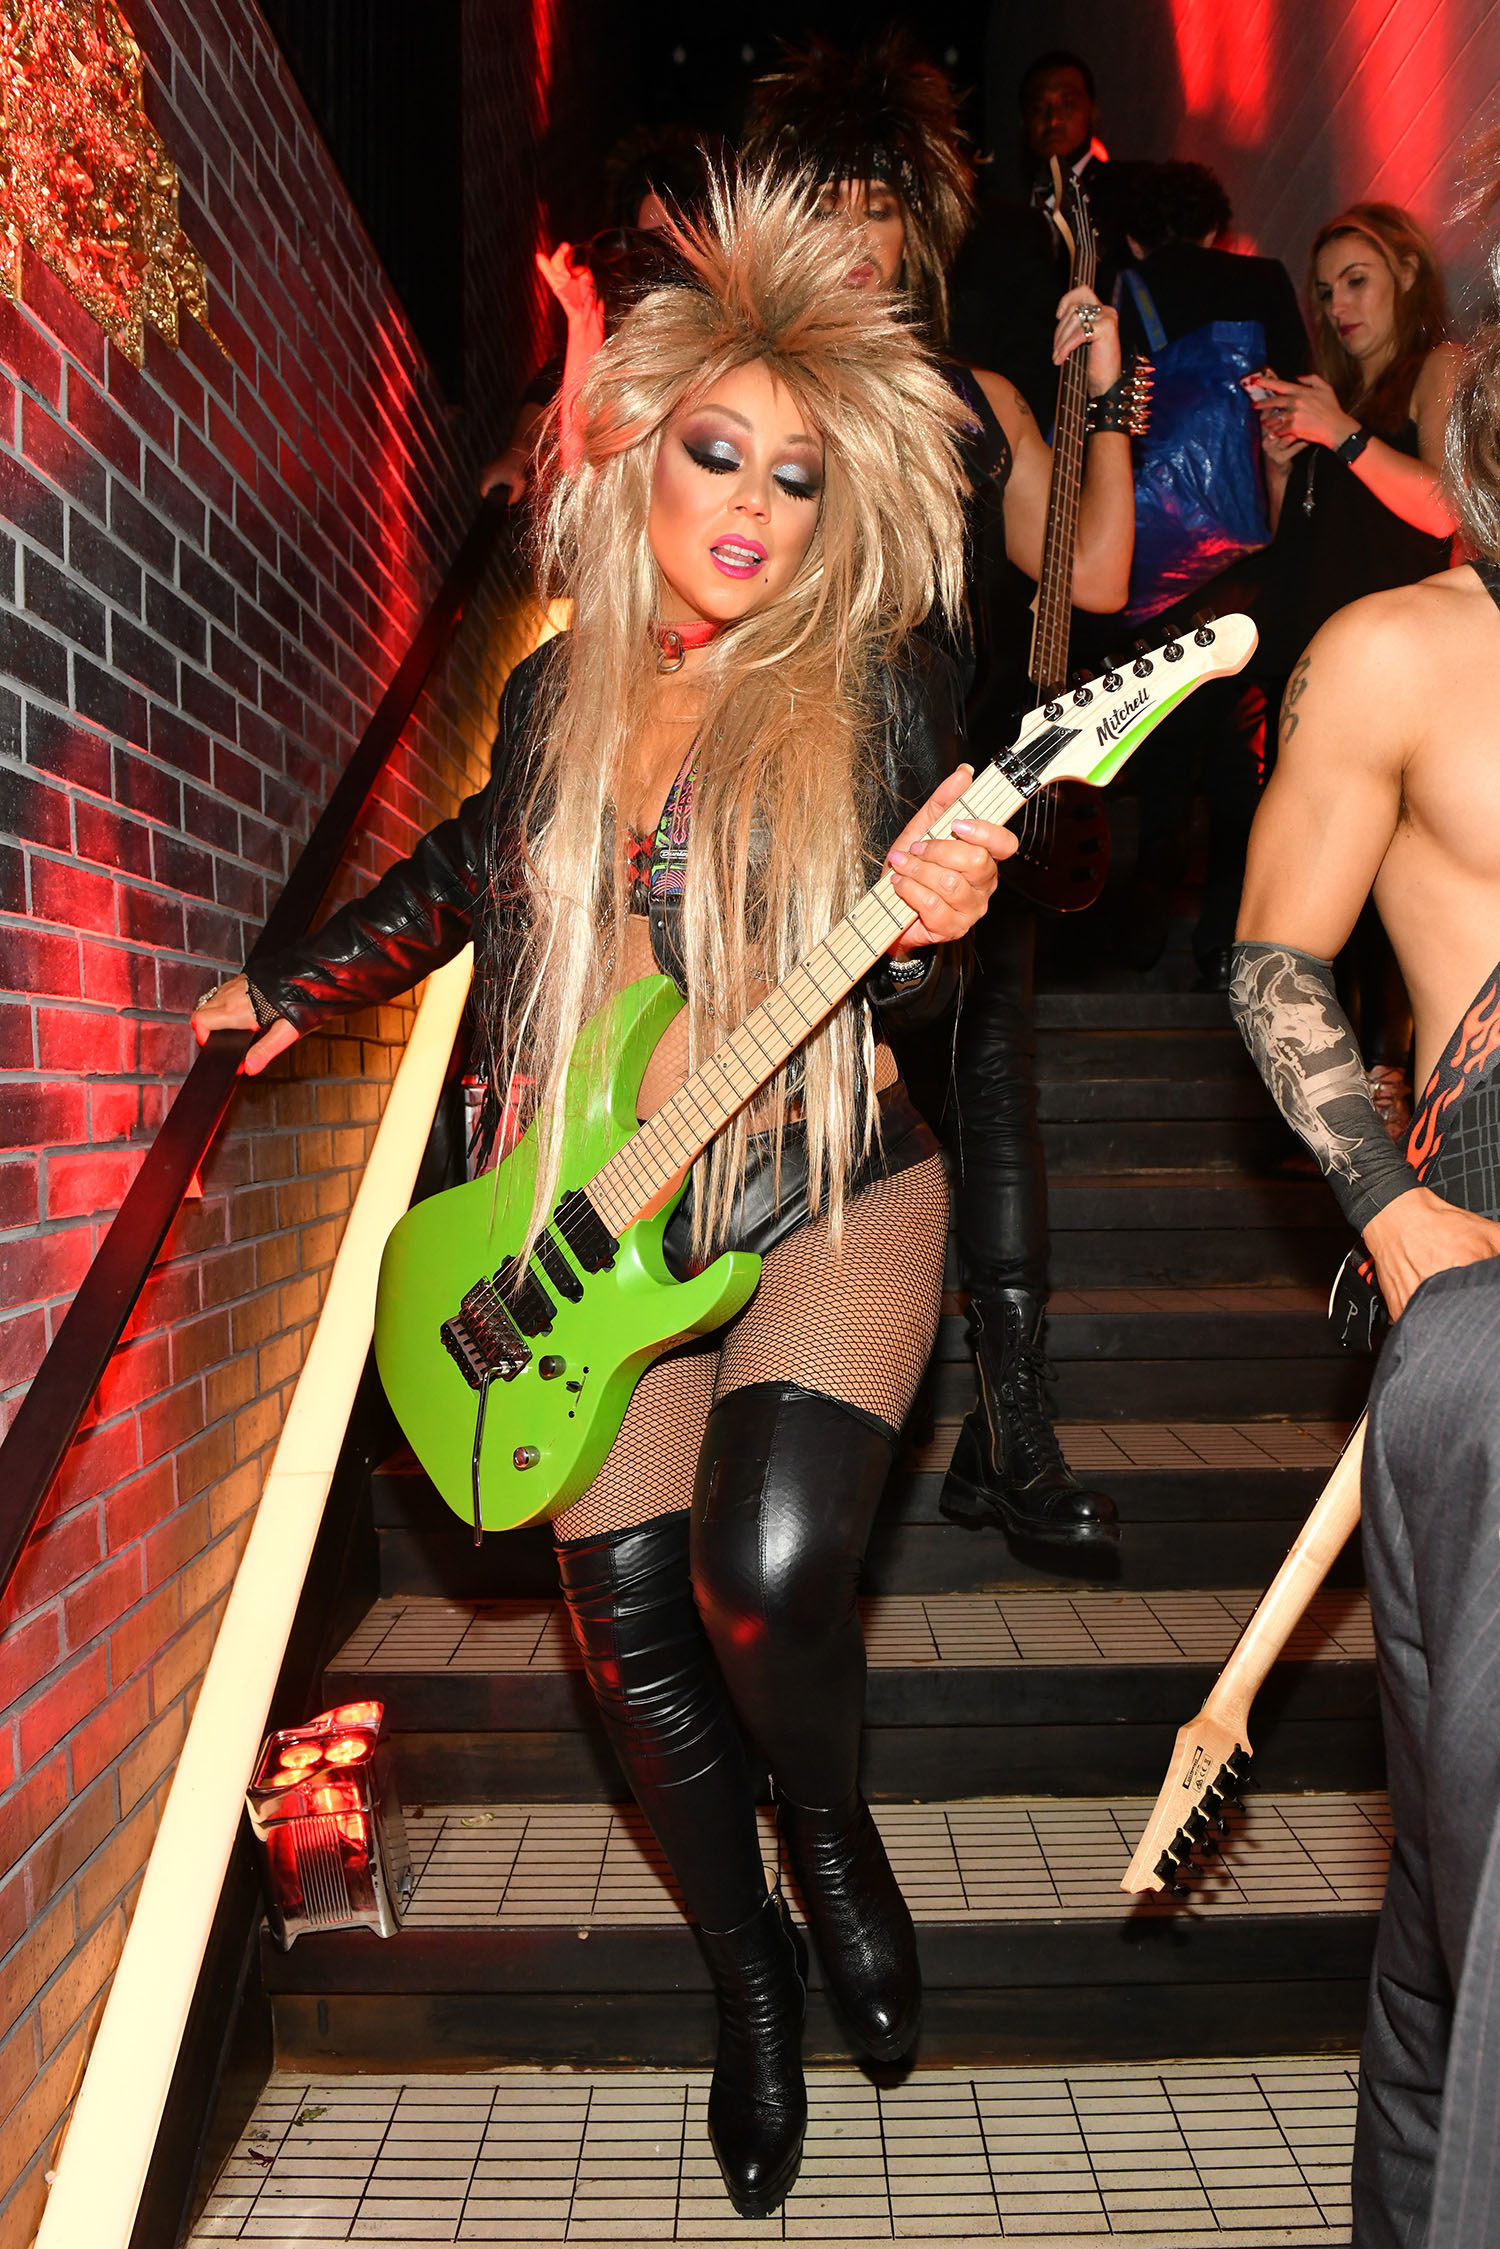 Mariah Carey dressed as a punk rocker on a staircase.